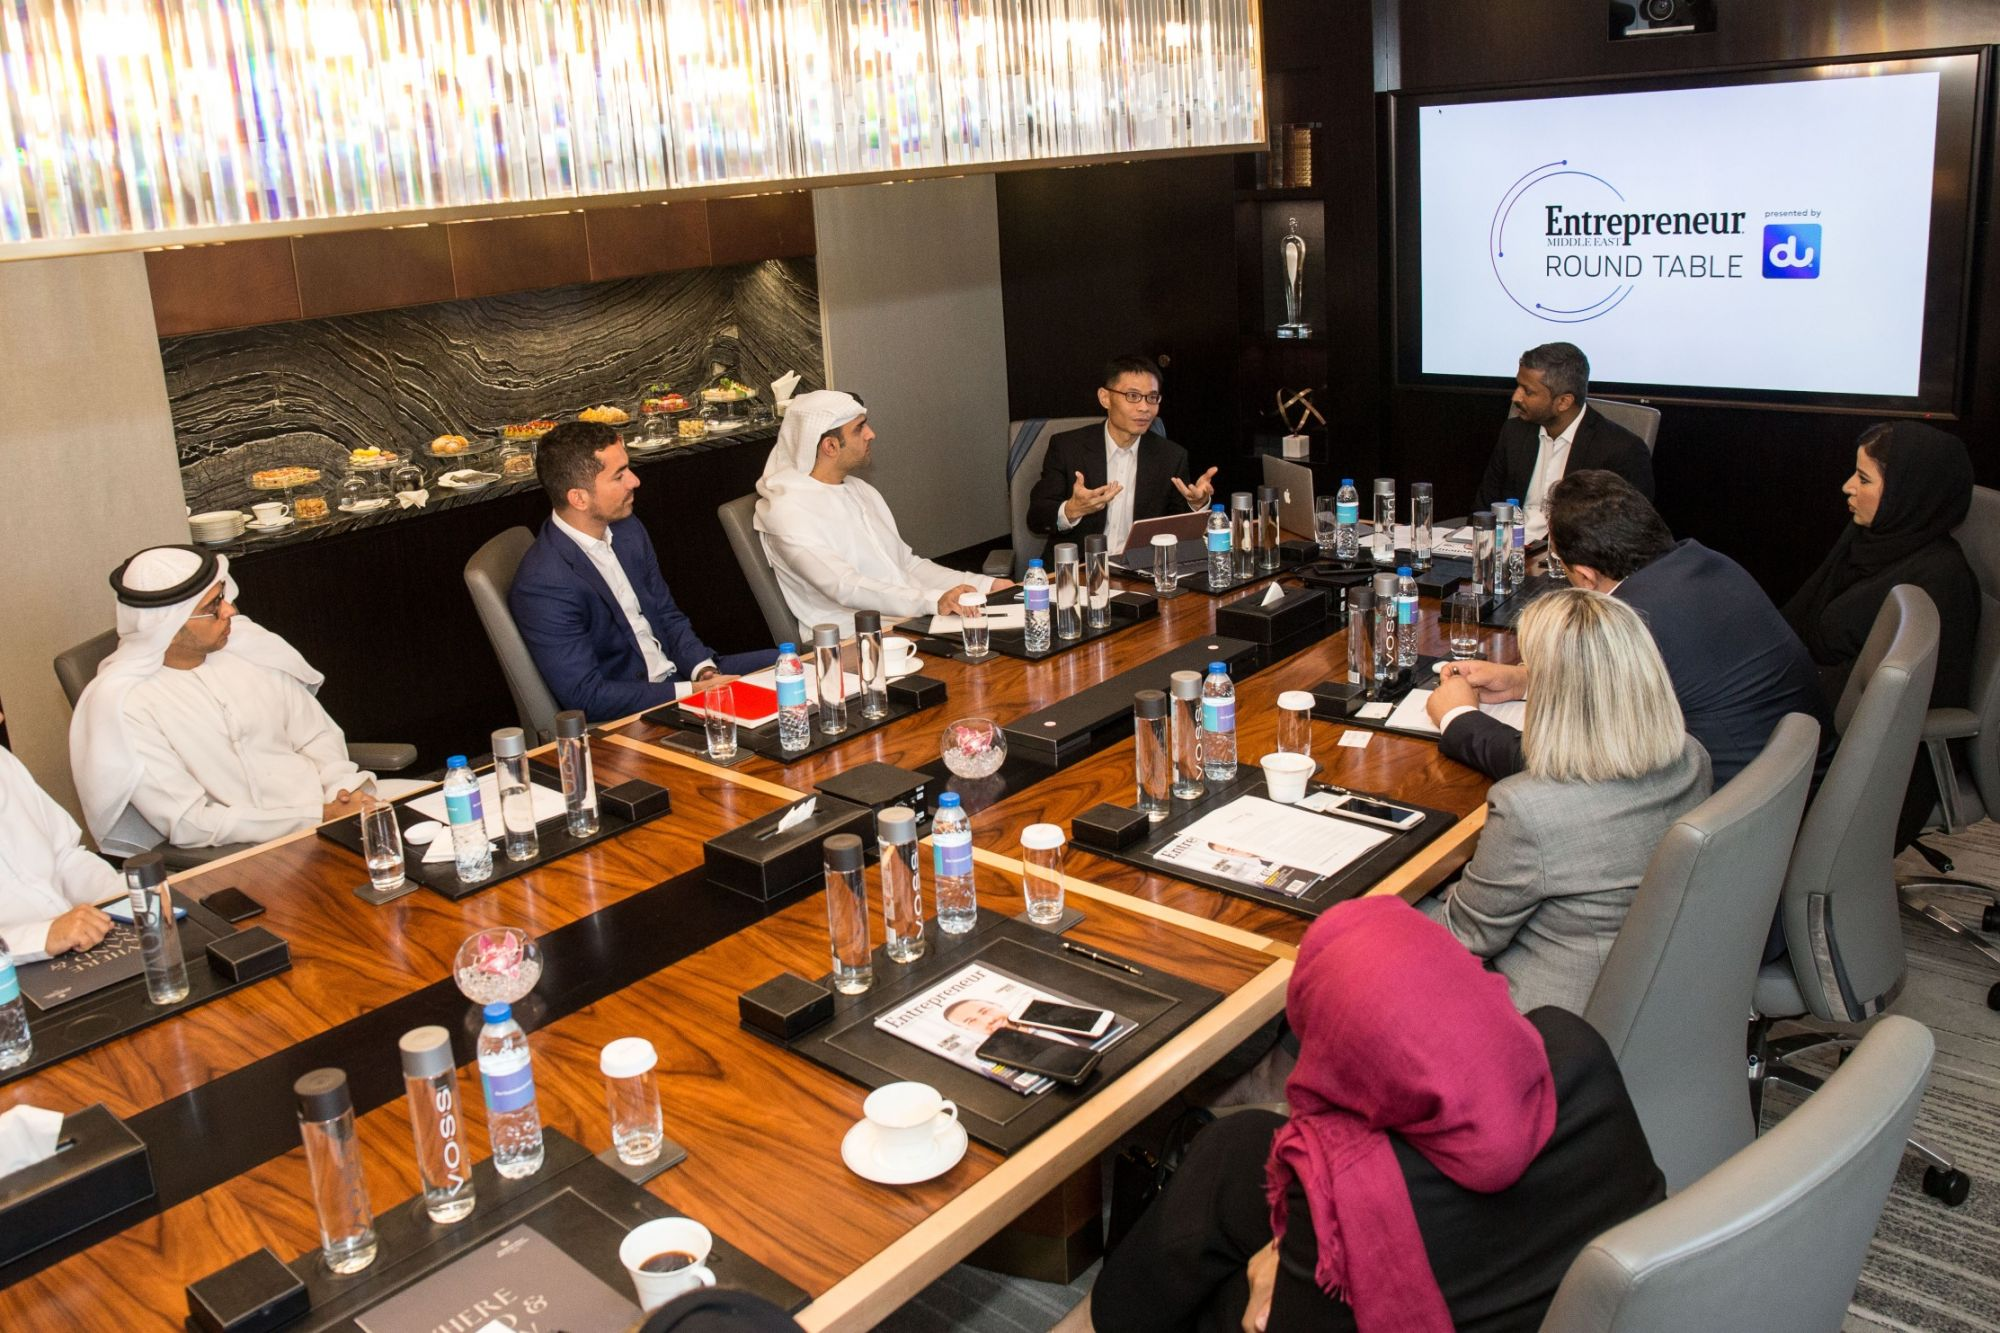 Round Table Jobs Application.Entrepreneur Middle East Hosts Round Table Presented By Du On